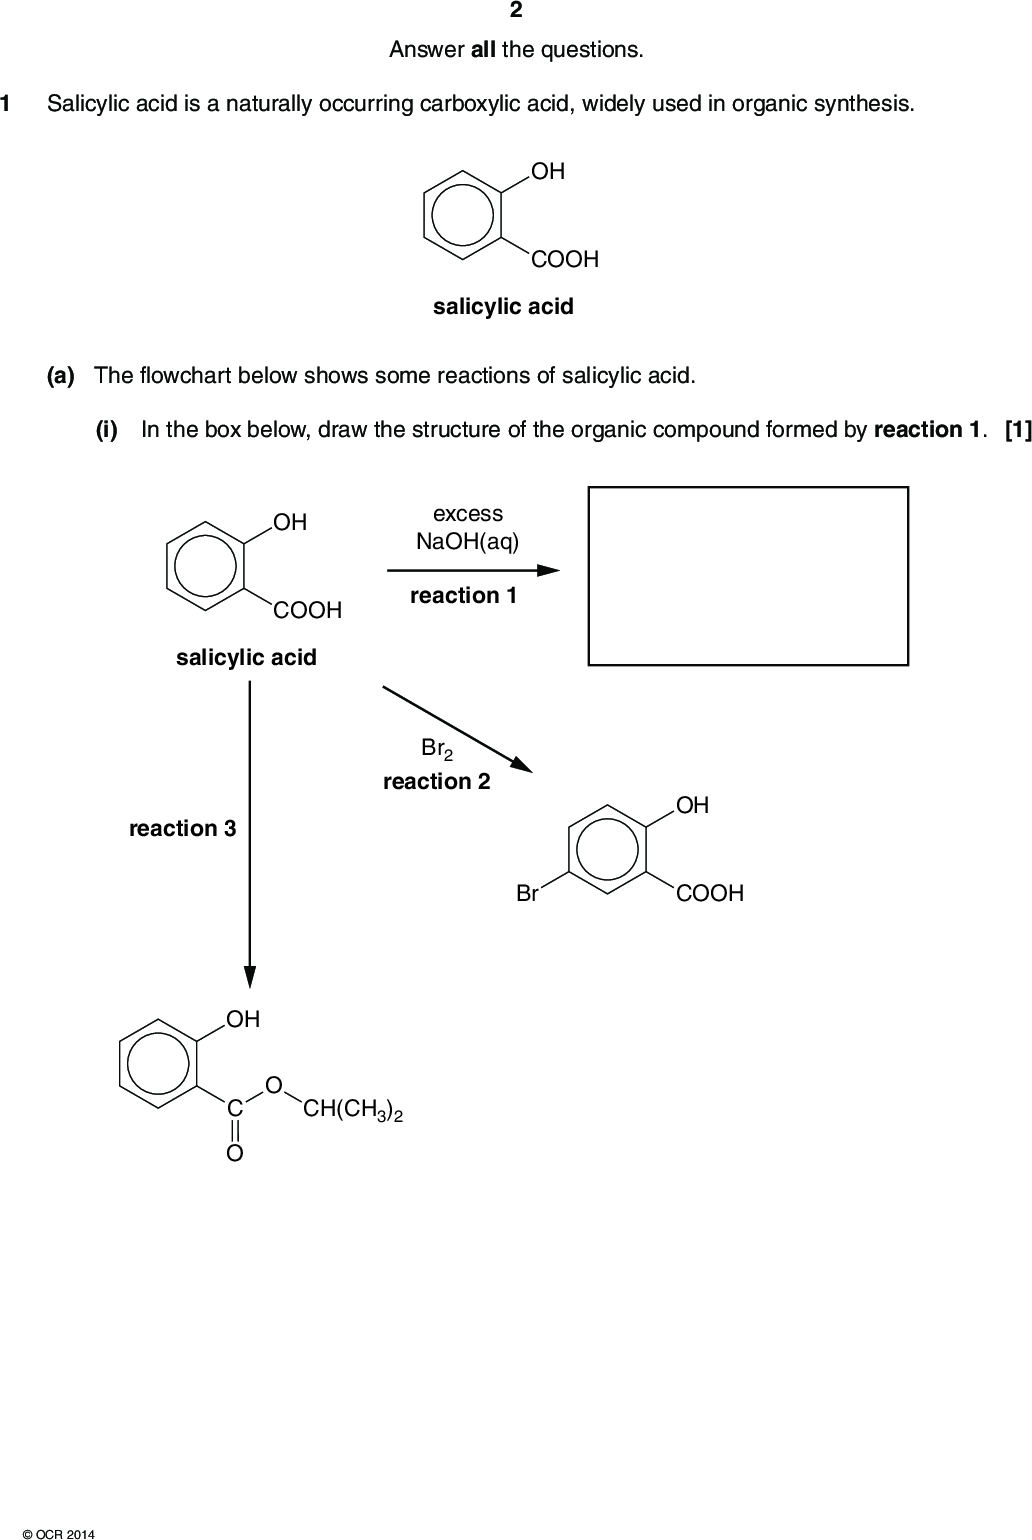 Answer all the questions. 1 Salicylic acid is a naturally occurring carboxylic acid, widely used in organic synthesis. OH COOH salicylic acid (a) The flowchart below shows some reactions of salicylic acid. (i) In the box below, draw the structure of the organic compound formed by reaction 1. [1] OH COOH excess NaOH(aq) reaction 1 salicylic acid Br2 reaction 2 reaction 3 OH Br COOH OH CH(CH3)2OCR 2014<br />  (ii) Describe what would be observed during reaction 2.[1] (iii) Write a chemical equation to represent reaction 2. (iv) State the reagents and conditions in reaction 3.[1] (b) Bromine reacts more readily with salicylic acid than with benzene. [1]OCR 2014 (i) Outline the mechanism for the bromination of salicylic acid shown in reaction 2 in the flowchart. A halogen carrier is not required for this reaction. The electrophile is Br2. [4] Turn over<br />  (ii) Explain why bromine reacts more readily with salicylic acid than with benzene. In your answer, you should use appropriate technical terms, spelled correctly.[3]OCR 2014<br />  (c) Mesalazine is a drug that can be synthesised from salicylic acid in two steps. OH COOH salicylic acid two-step synthesis OH H2N COOH mesalazine (i) Suggest a two-step synthesis to prepare mesalazine from salicylic acid. For each step state the reagents used,write a chemical equation. (ii) Mesalazine reacts with acids to form salts. Explain how mesalazine is able to react with acids.[1] [4]OCR 2014 Turn over<br />  (iii) Mesalazine reacts in another two-stage process as shown below. In the boxes, draw the structures of organic compounds A and B. [2] OH NaNO2 and HCl H2N COOH < 10 C mesalazine compound A NaOH(aq) followed by neutralisation compound B OH OH COOH (d) Salicylic acid can be used to form a condensation polymer similar to Terylene. OH COOH salicylic acid (i) Explain what is meant by the term condensation polymer.[1]OCR 2014<br />  (ii) The repeat unit of Terylene is shown below. C O CH2 CH2 Terylene Draw the skeletal formula